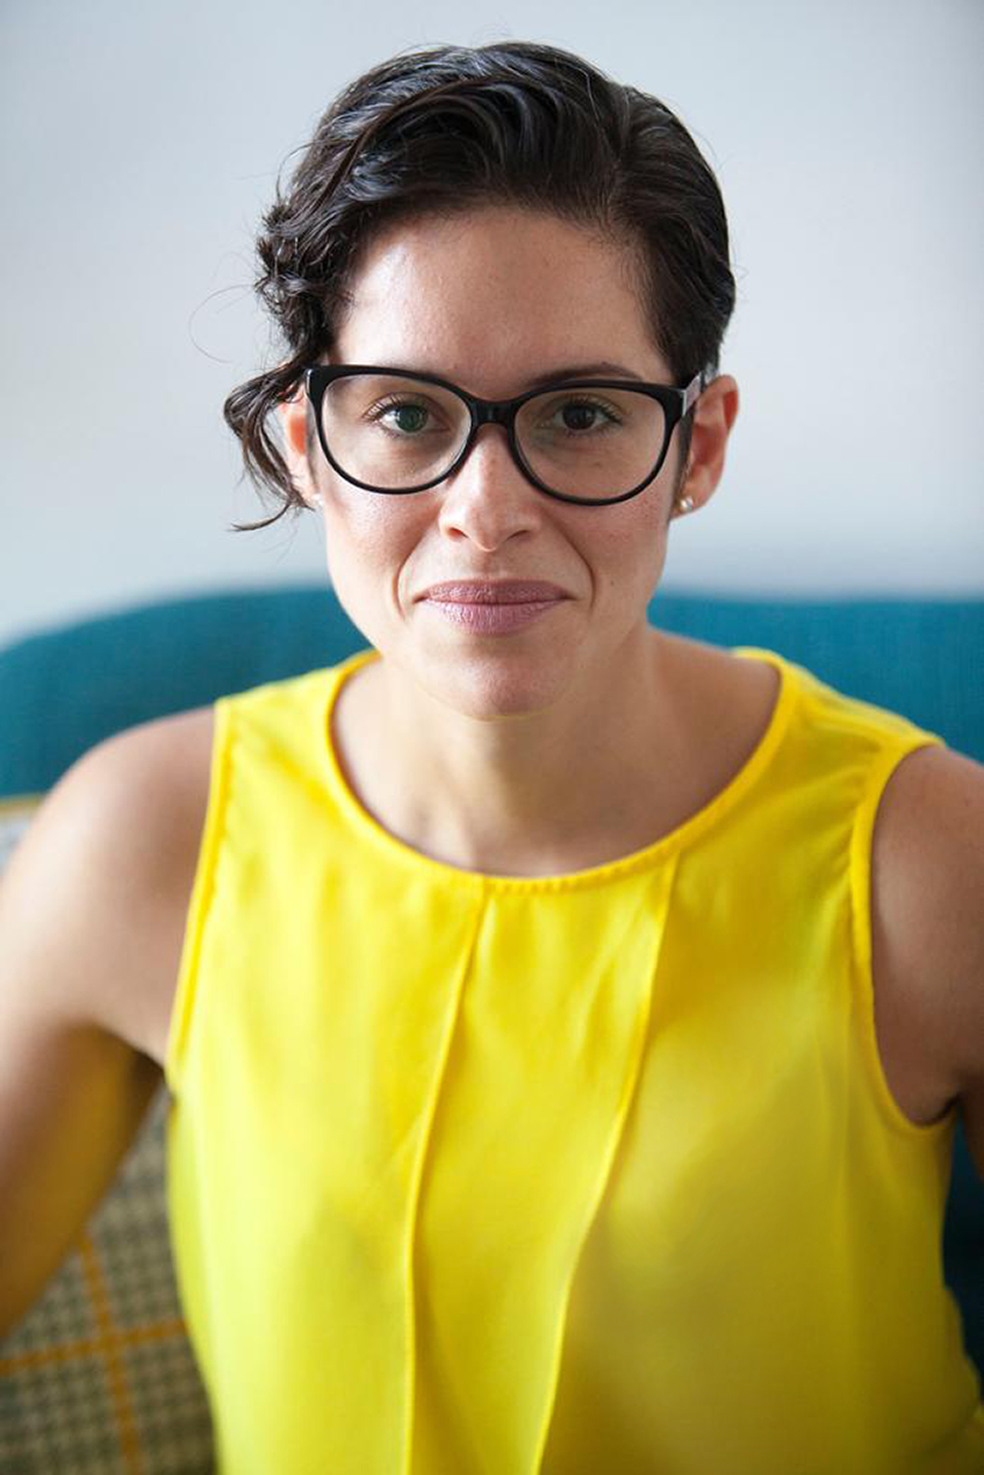 Rafaela Nunes, Private Counsellor, Private therapy, mental wellbeing, creative therapy